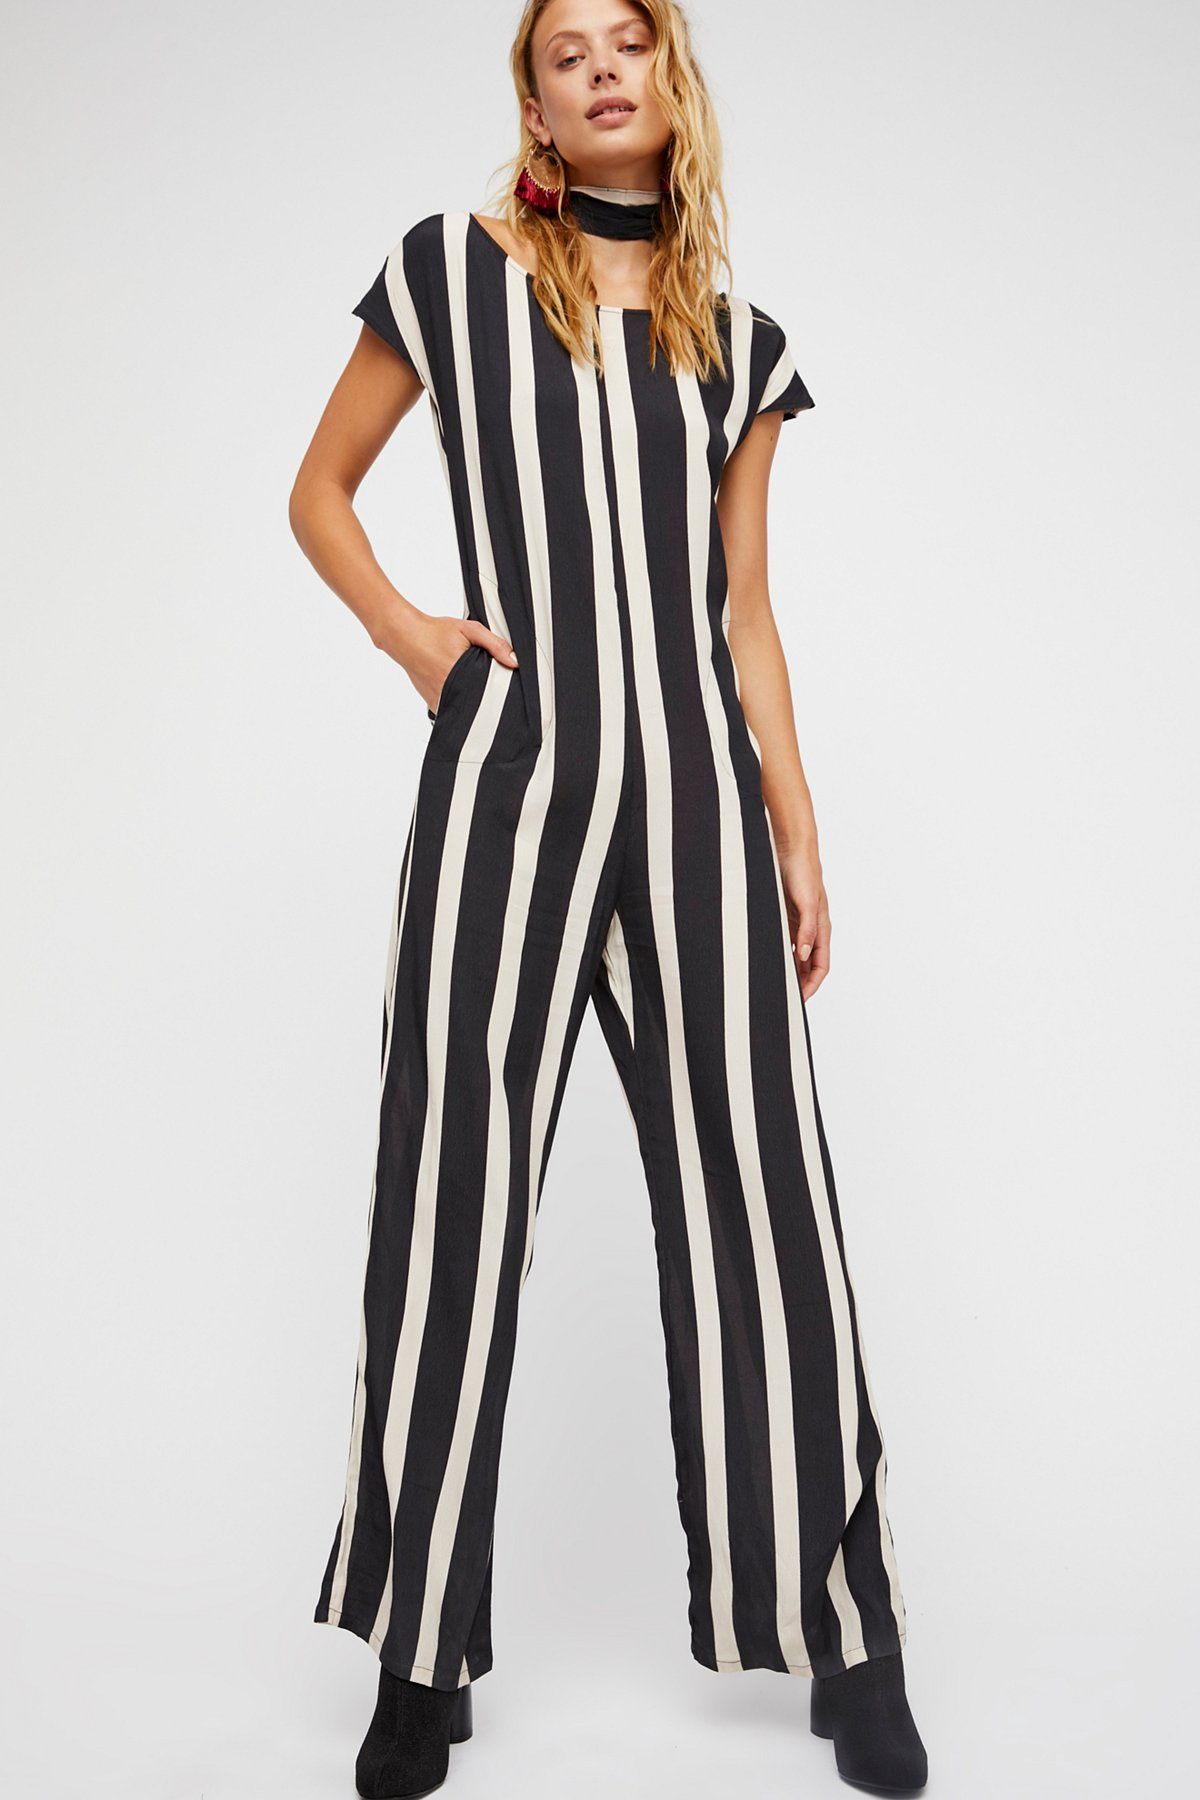 Downtown Playsuit